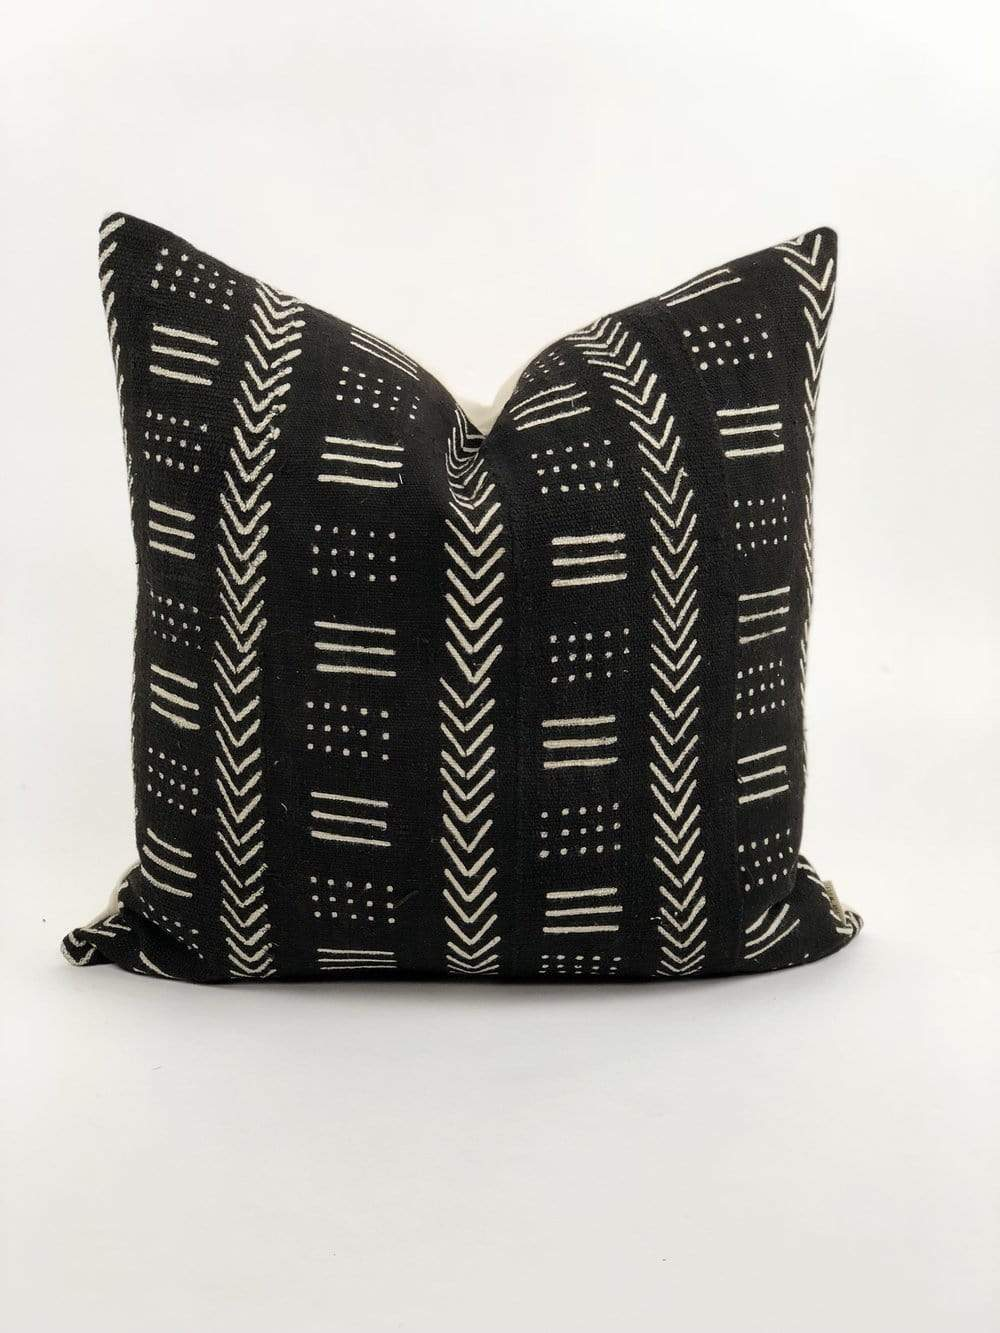 "Bryar Wolf Handmade Decorative Throw Pillows With Insert / 12"" x 20"" KEIL"